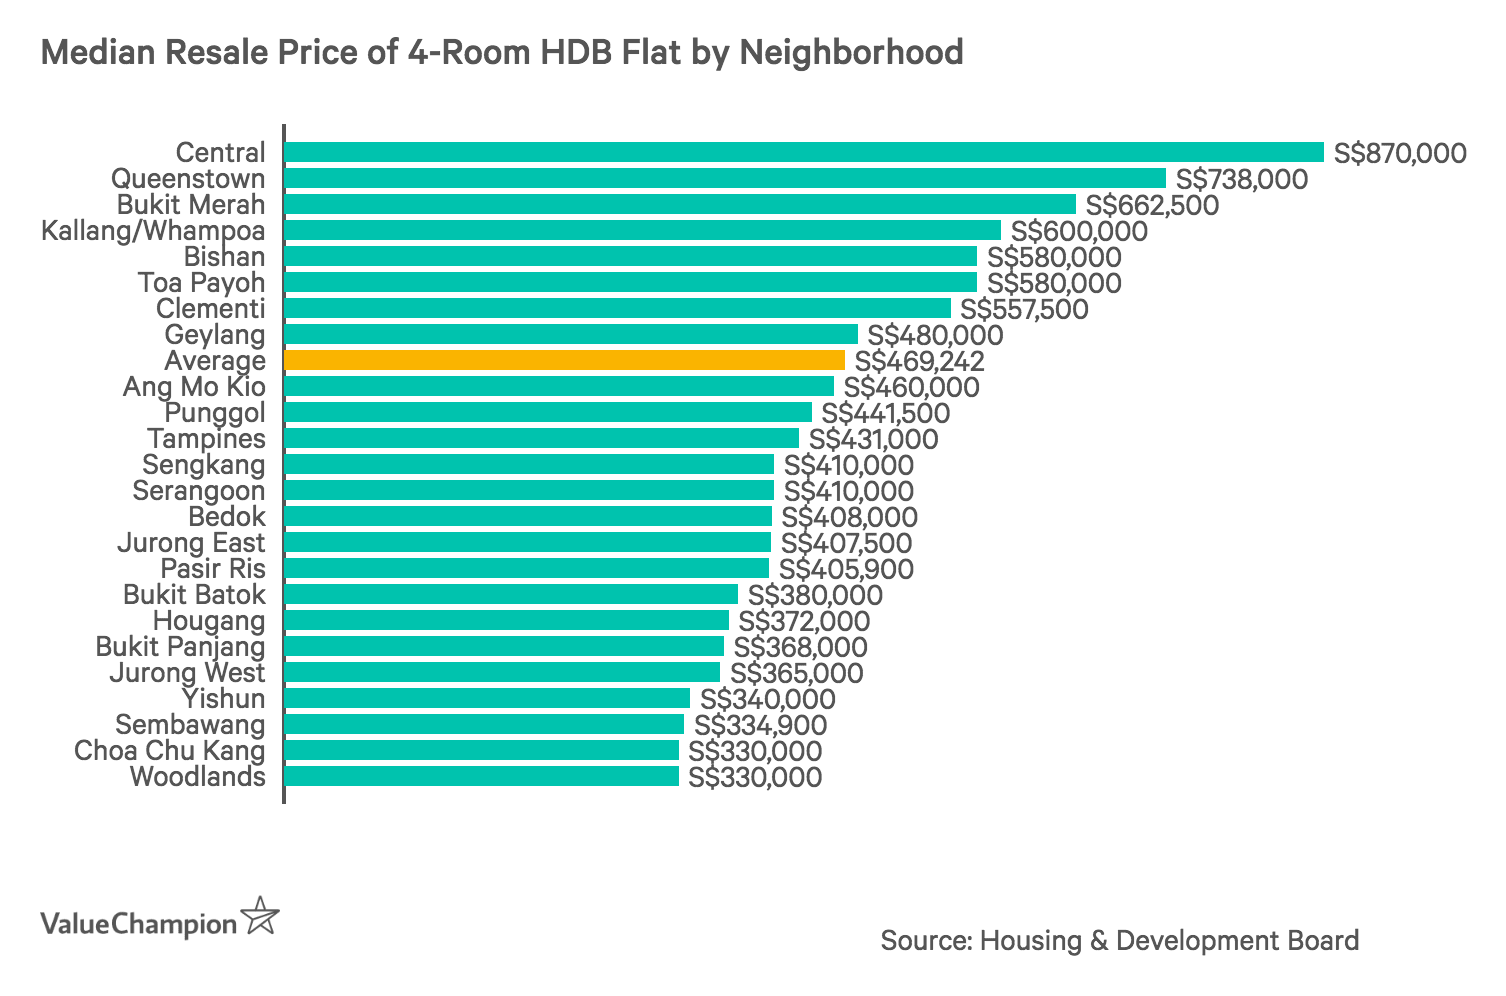 Median Resale Price of 4-Room HDB Flat by Neighborhood